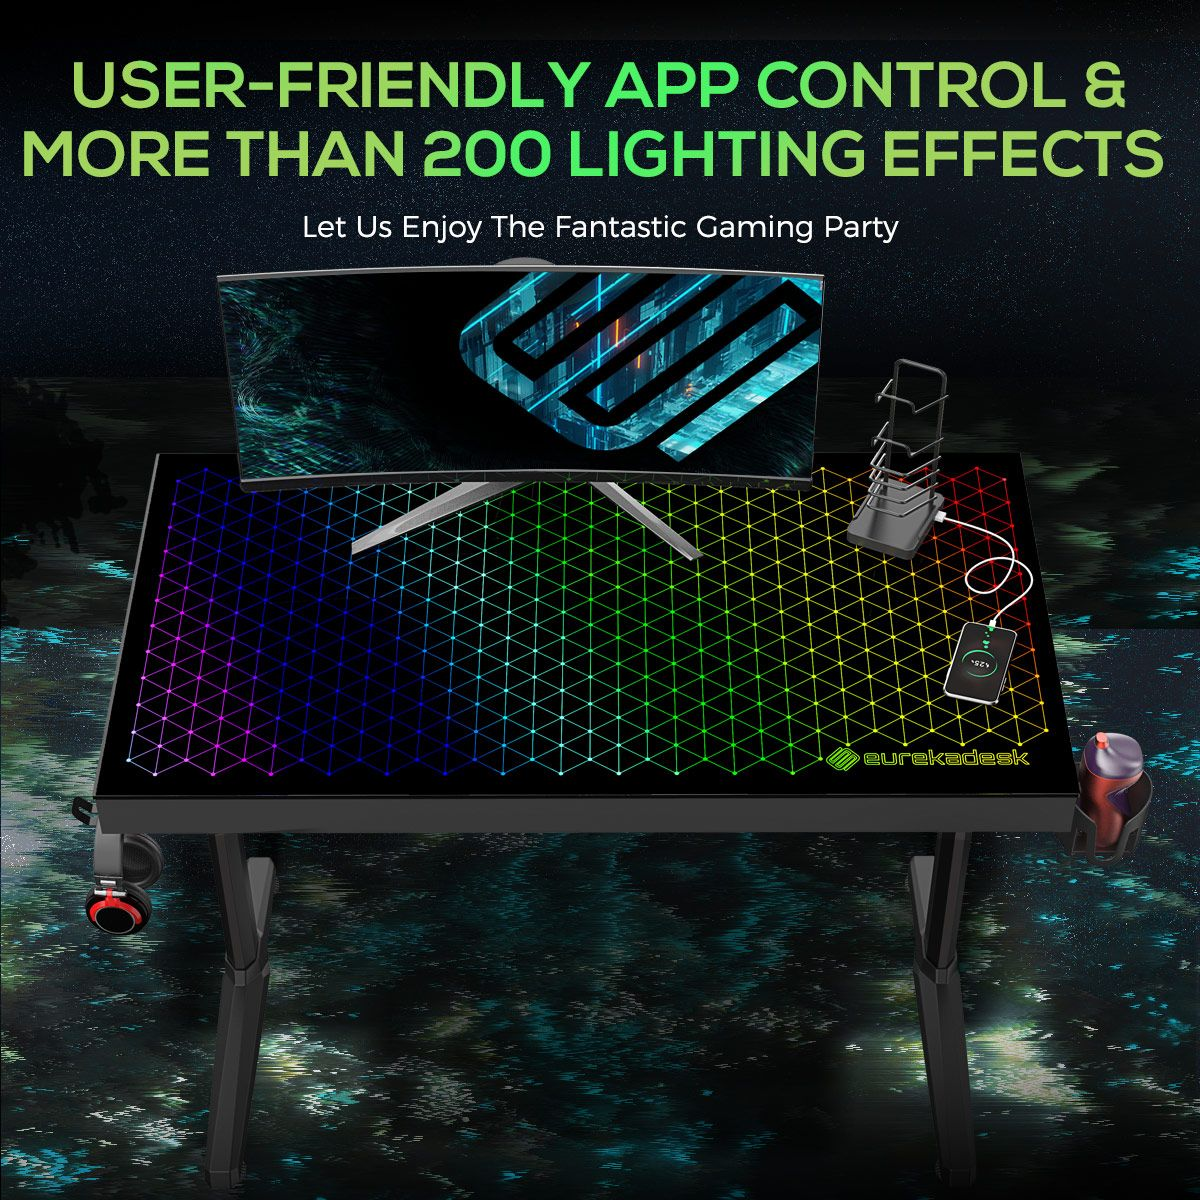 Eureka Ergonomic®  43 inch Tempered Glass Gaming Desk with RGB Lighting, Home Office Computer Desk New Polygon Legs Design, Free Controller Stand Cup Holder & Headphone Hook, Black